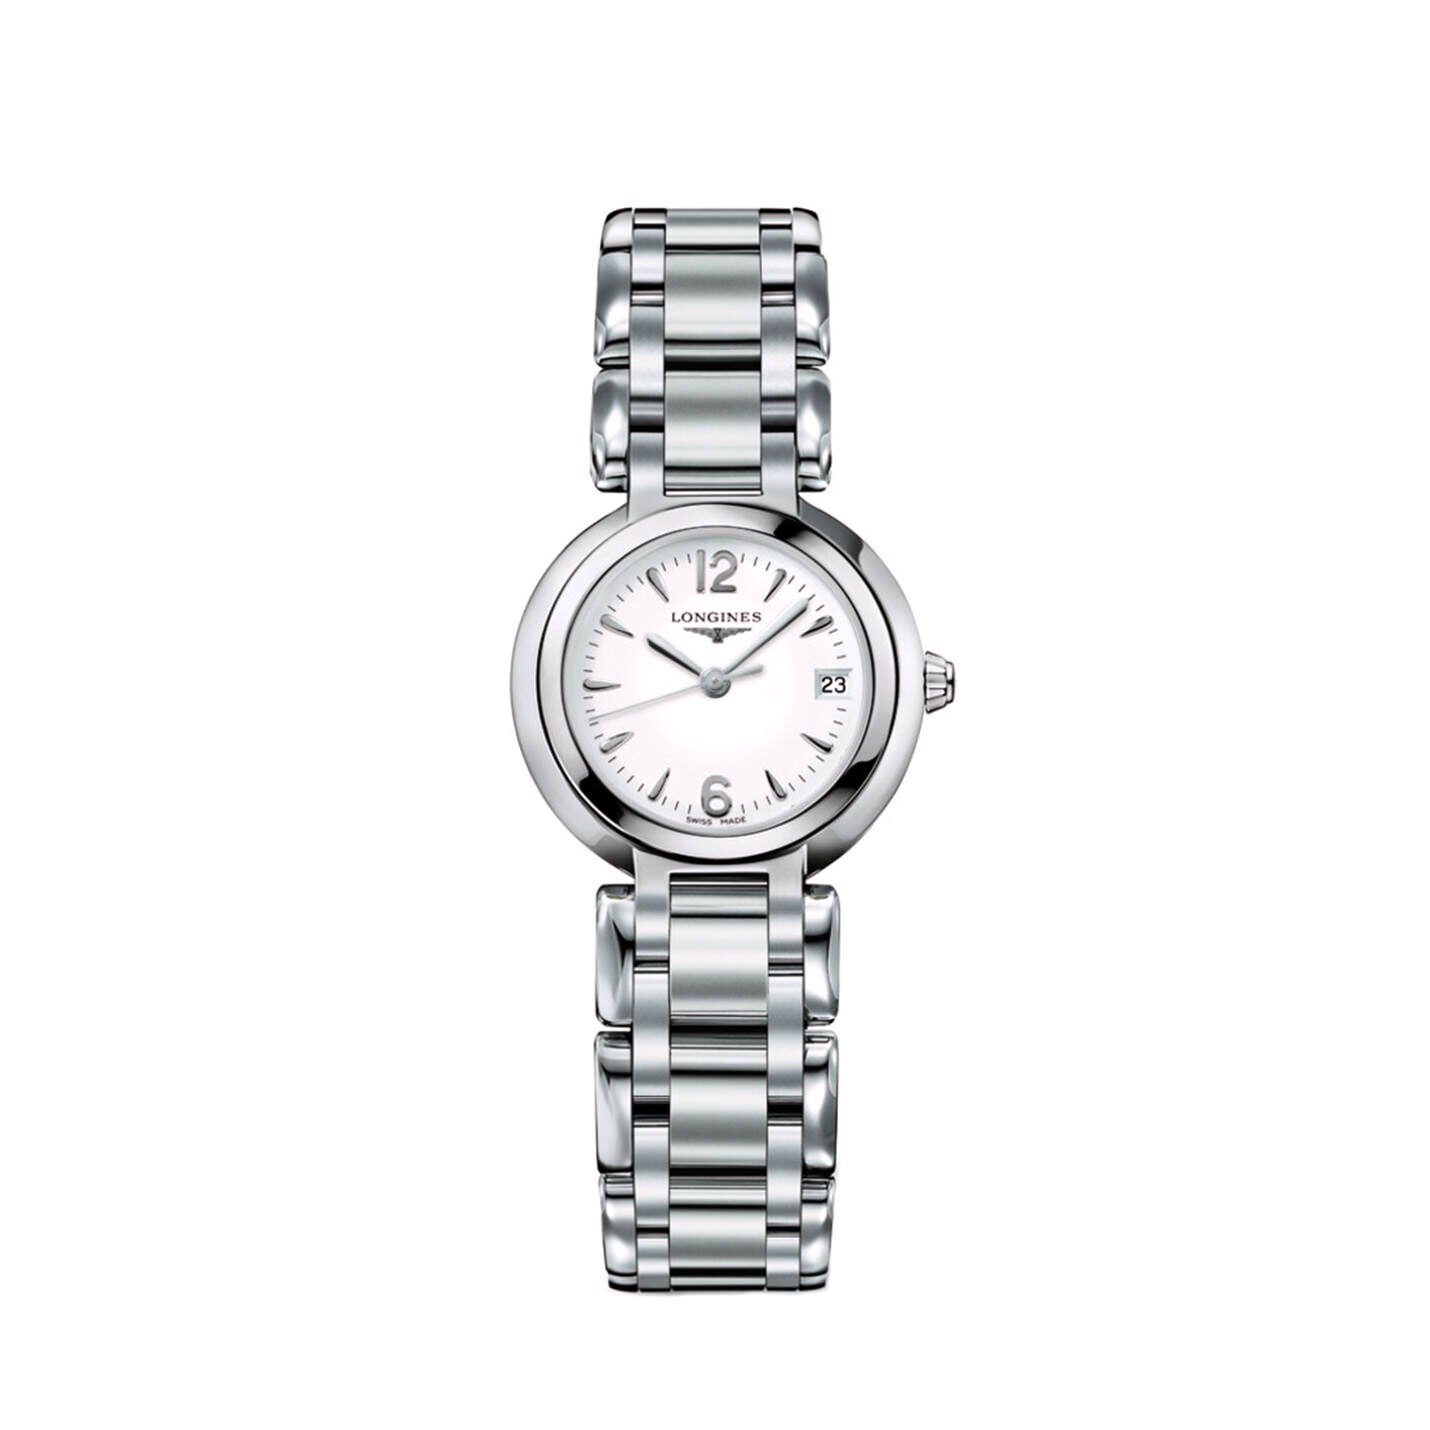 Longines PrimaLuna Collection – Ladies Stainless Steel Watch